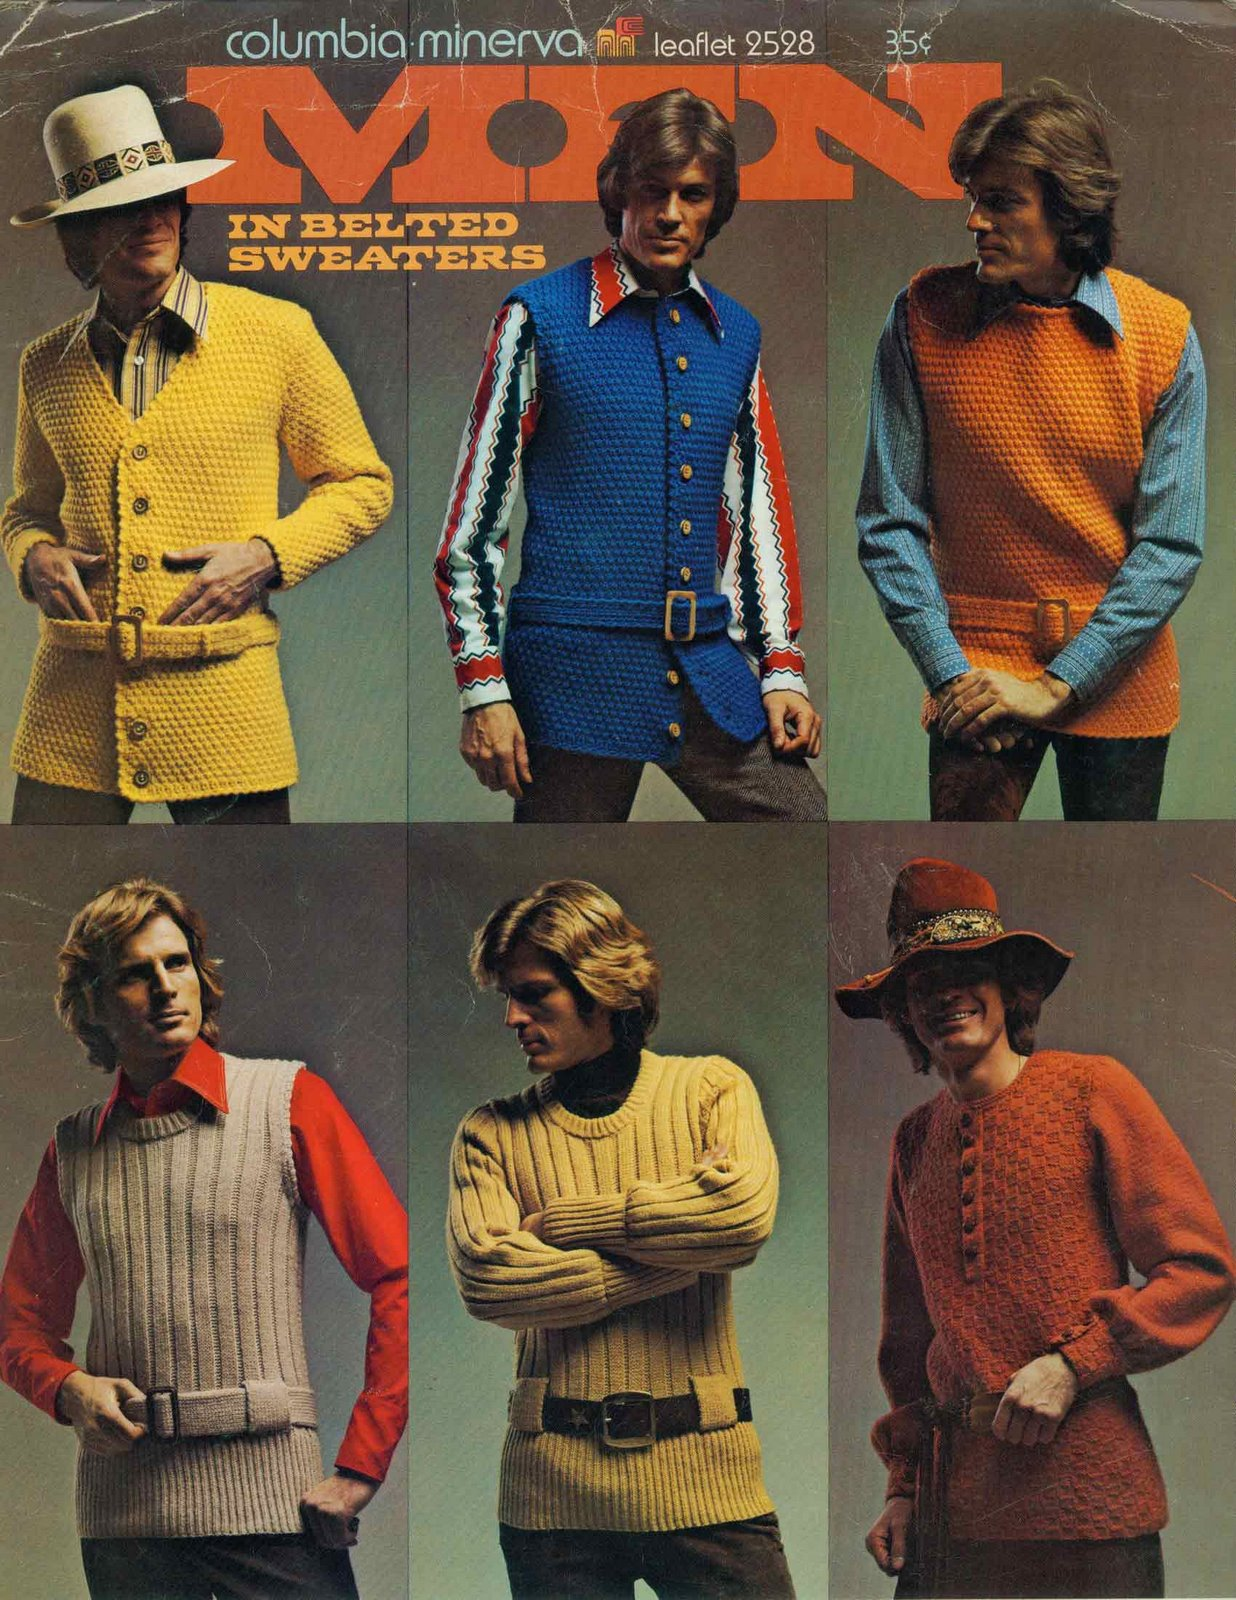 Men in belted sweaters 1970s knitwear and fashion